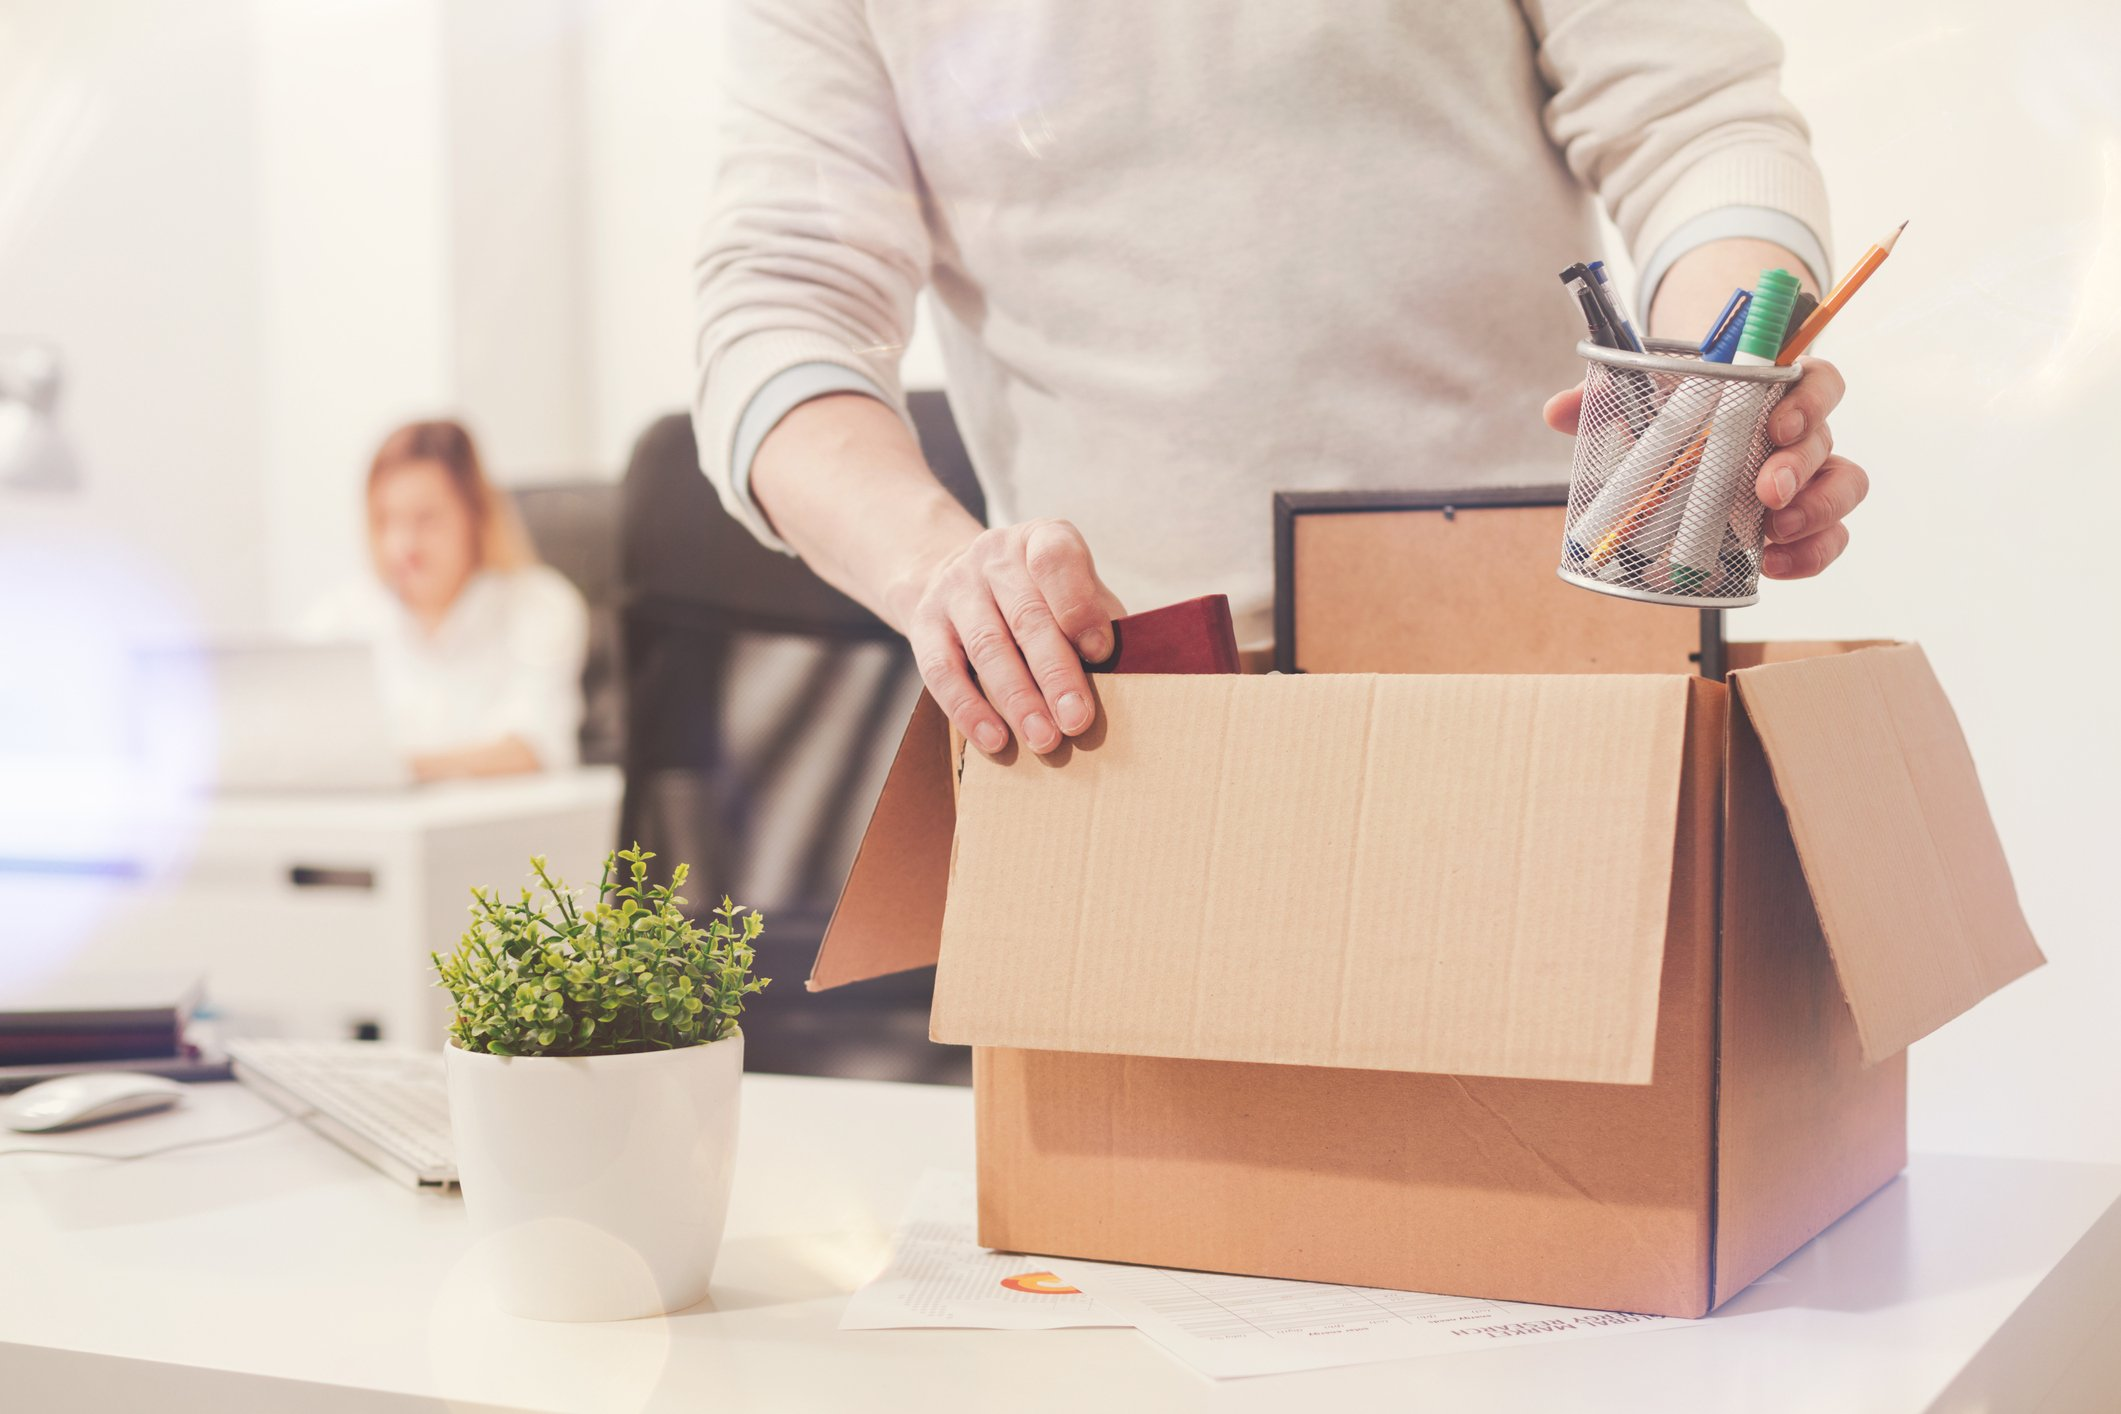 What Is High Employee Turnover Costing your Business?